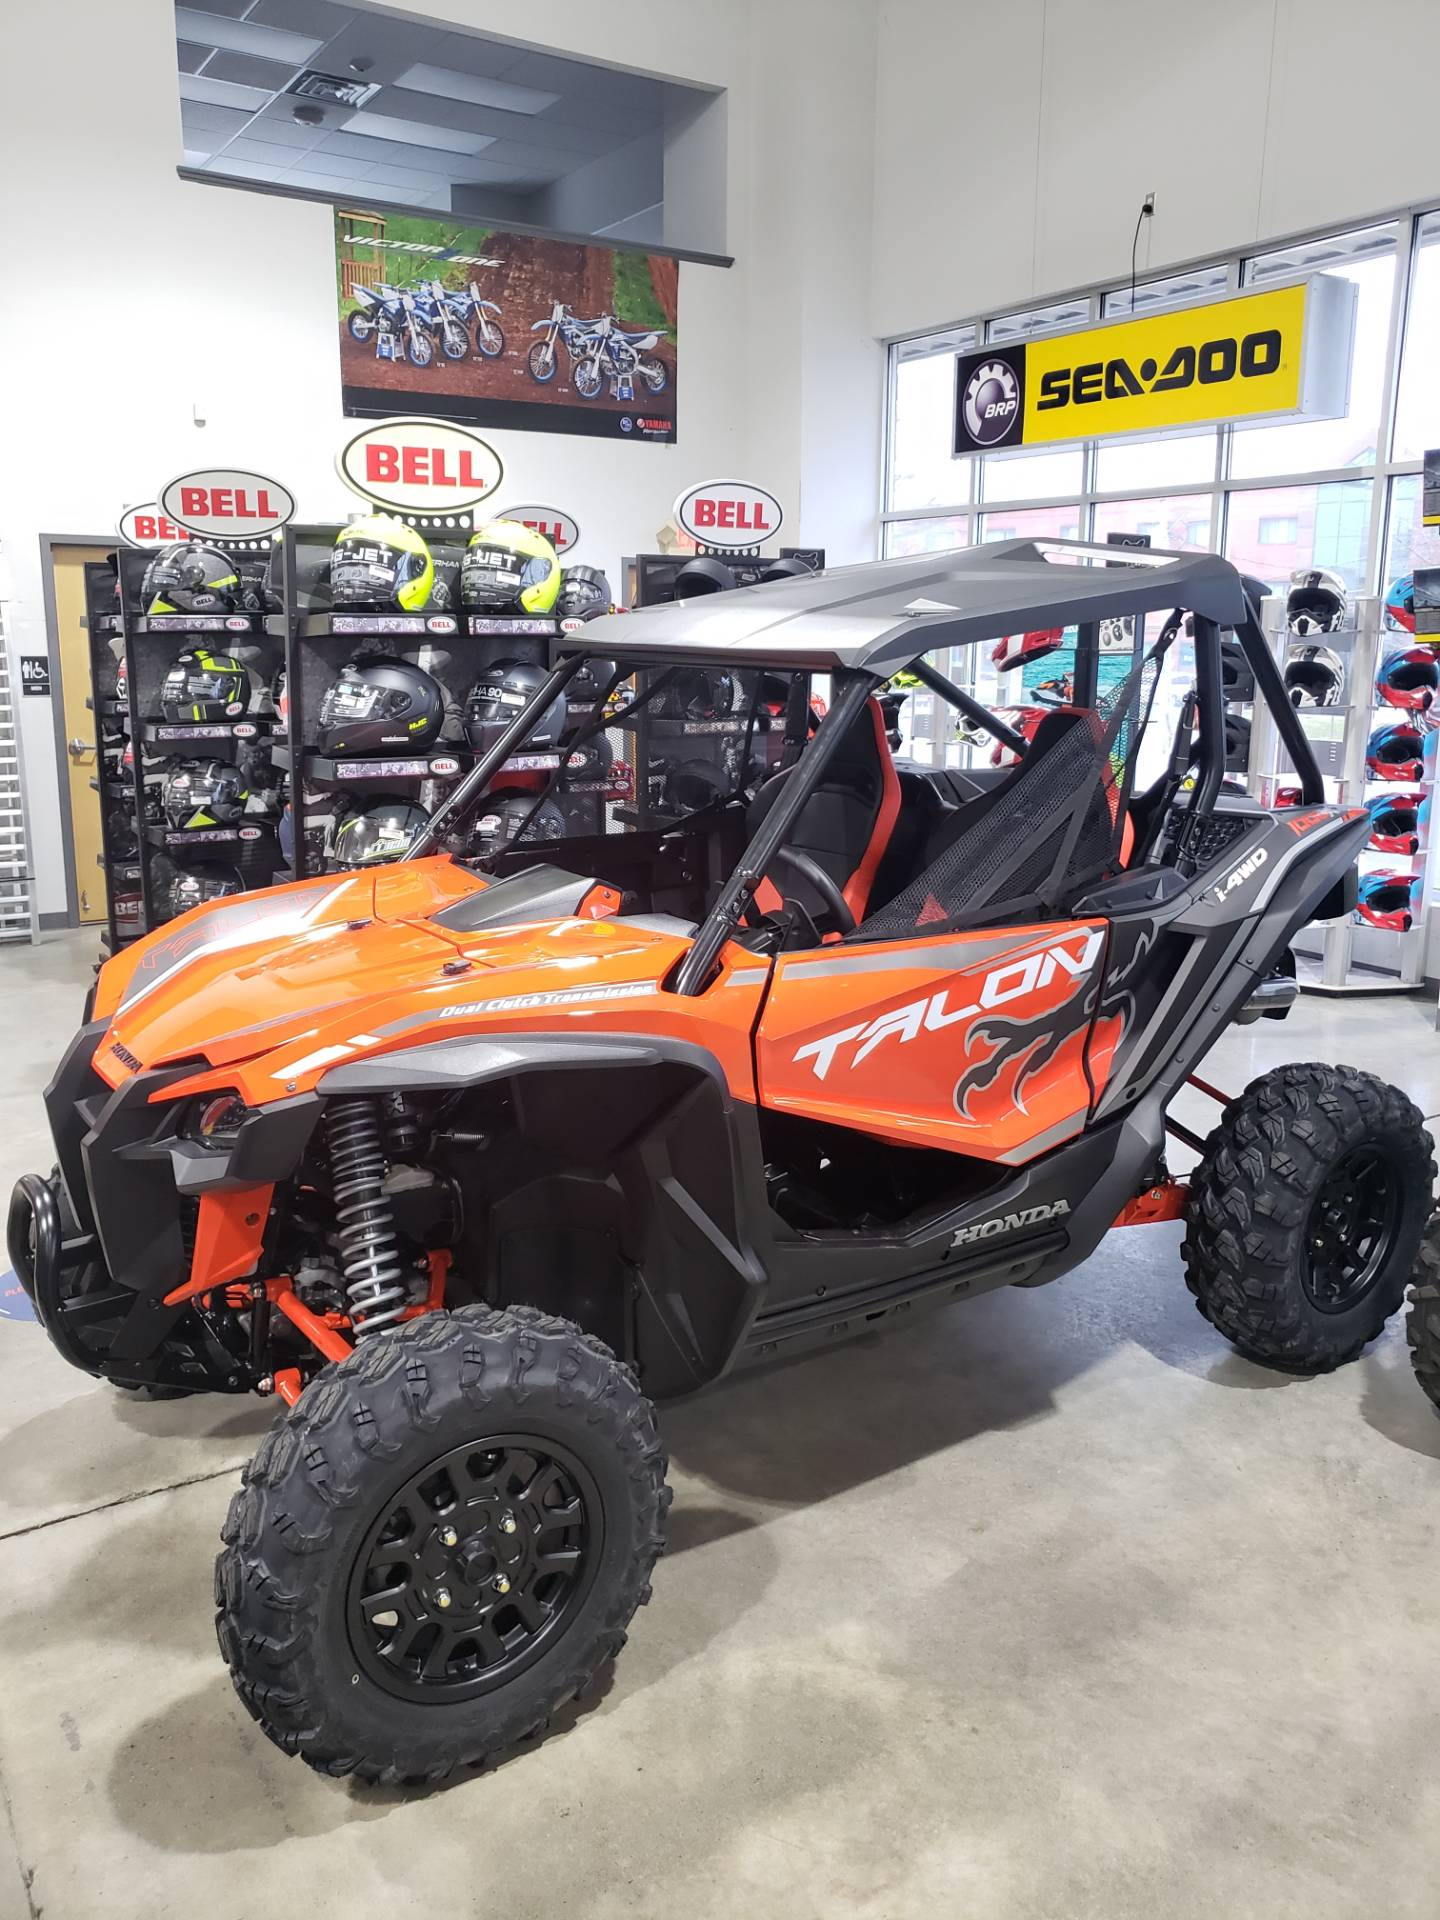 2021 Honda Talon 1000 X in Danbury, Connecticut - Photo 1